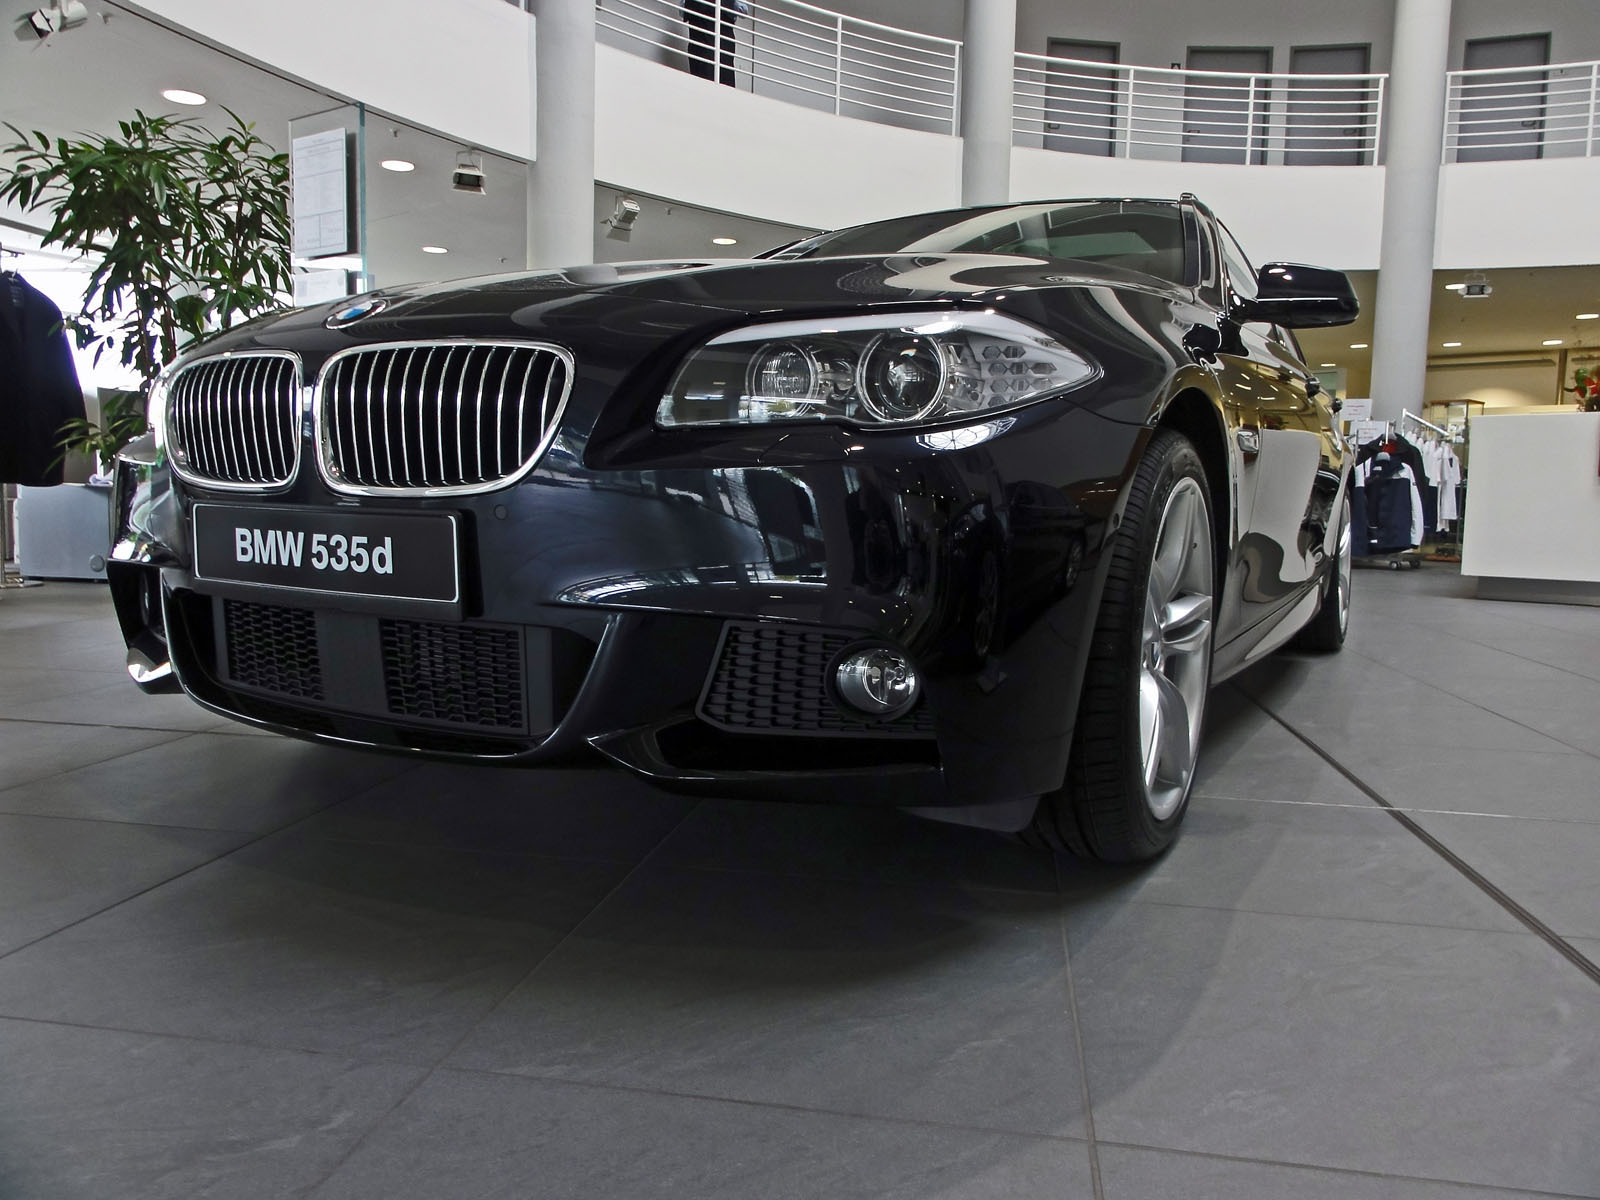 echte fotos vom bmw 5er touring f11 mit m sportpaket. Black Bedroom Furniture Sets. Home Design Ideas